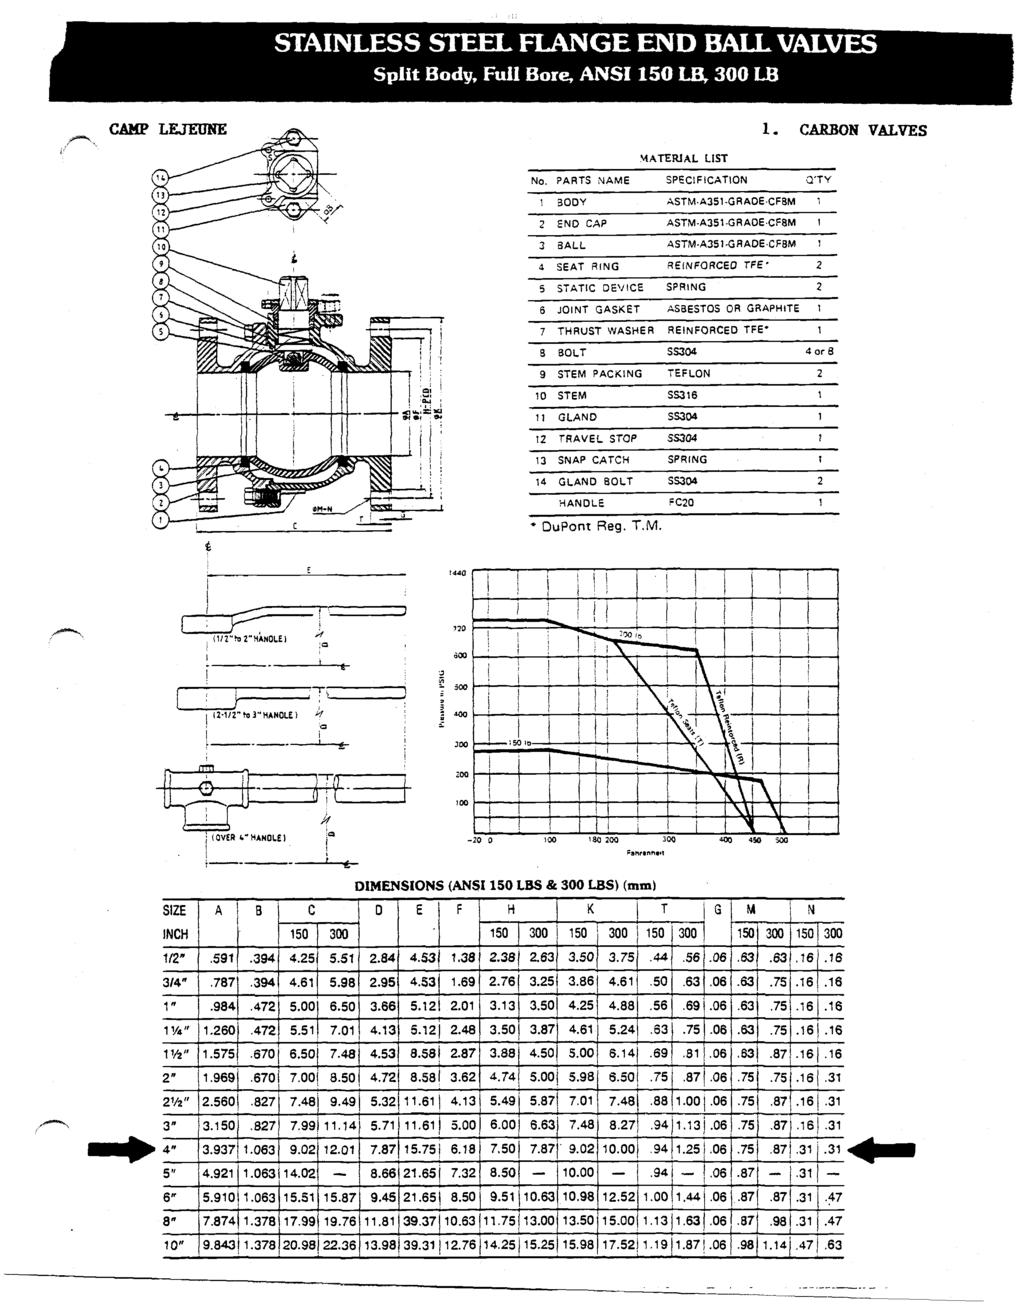 Operation And Maintenance Manual Groundwater Treatment System Displaying 20gt Images For Free Body Diagram Incline Oupont 1 Carbon Valves R 4 L